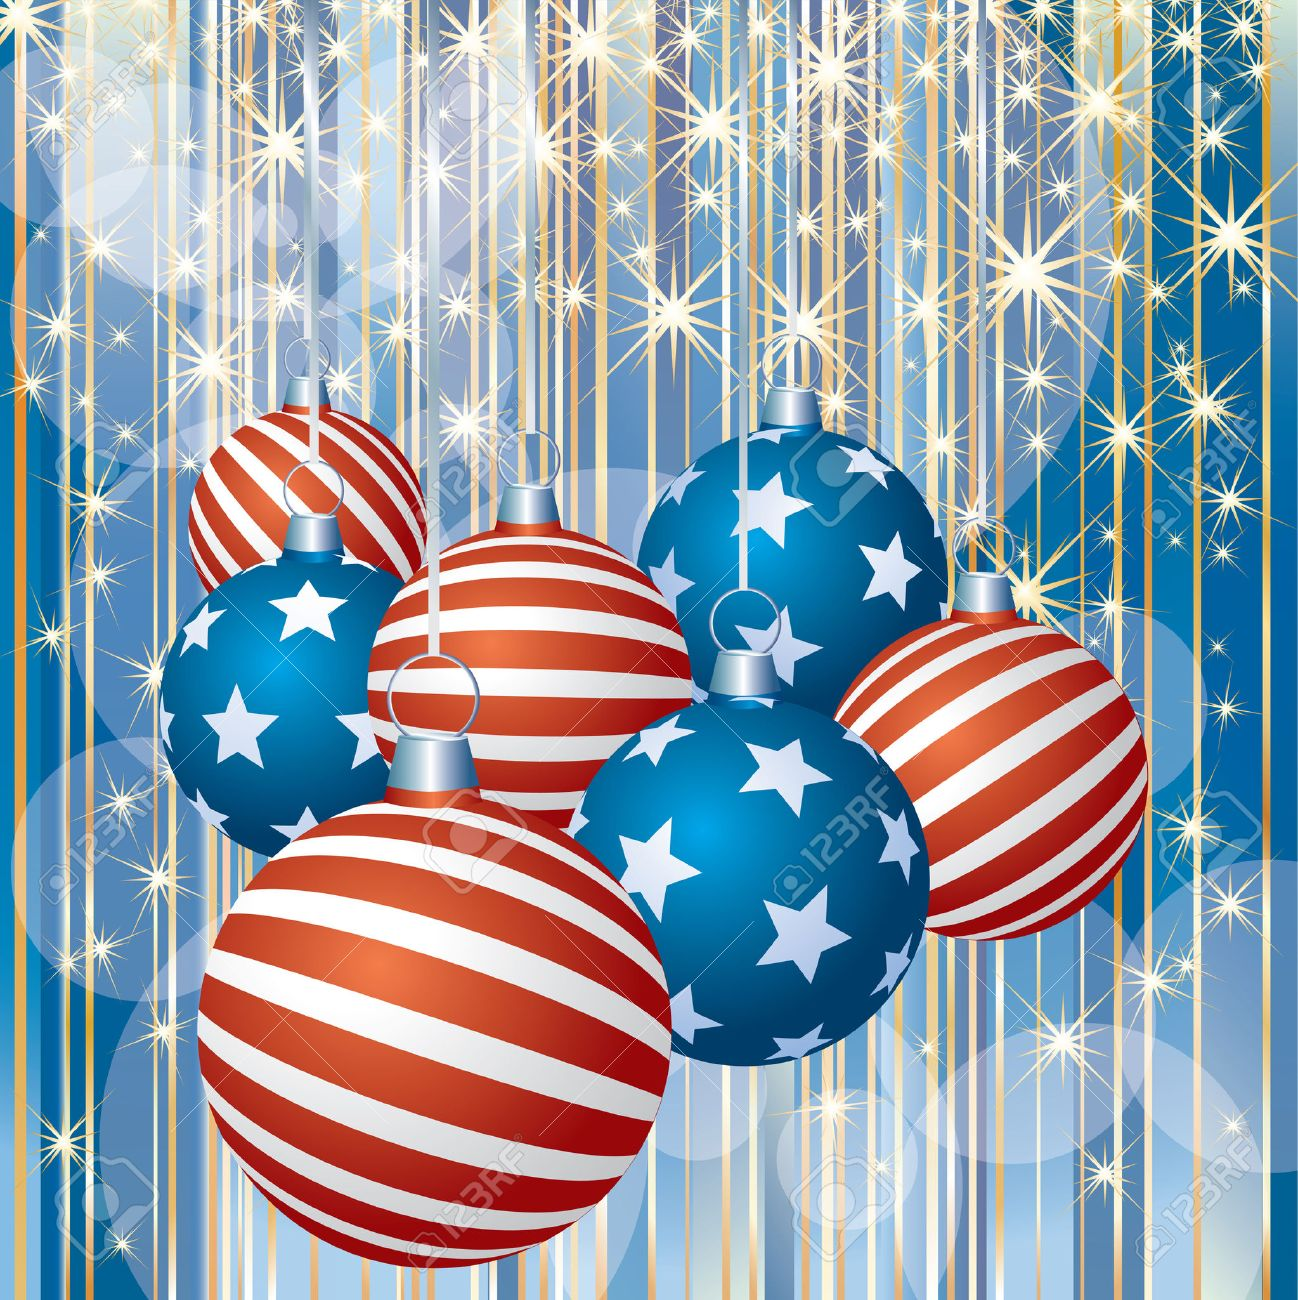 Abstract Christmas Background With Patriotic Balls Royalty Free ...